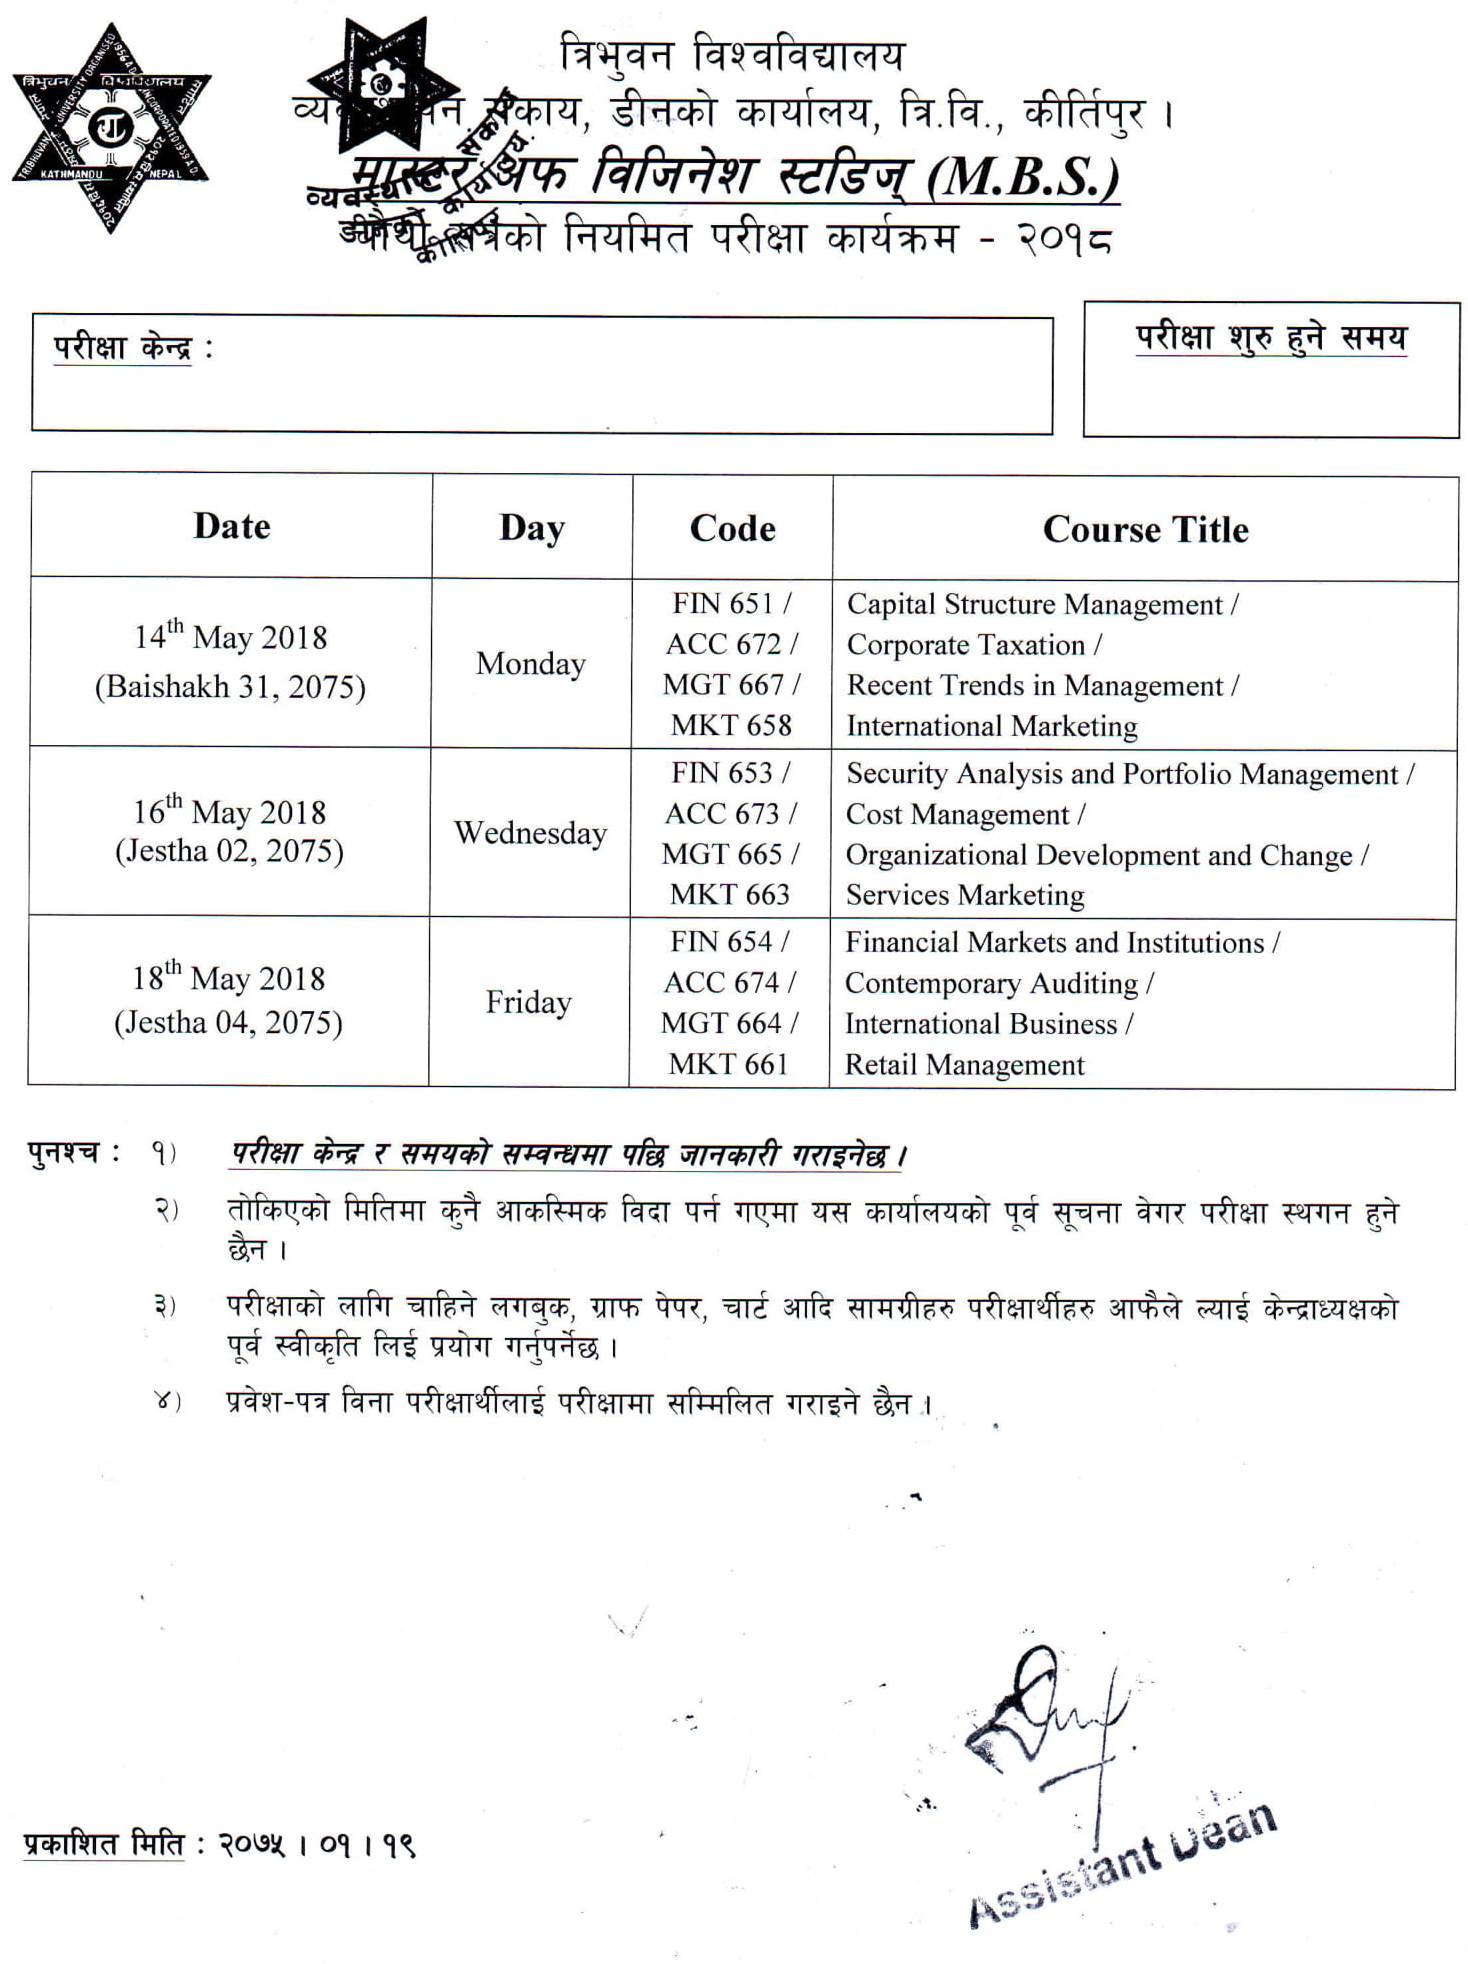 Tribhuvan University MBS 4th Semester routine published